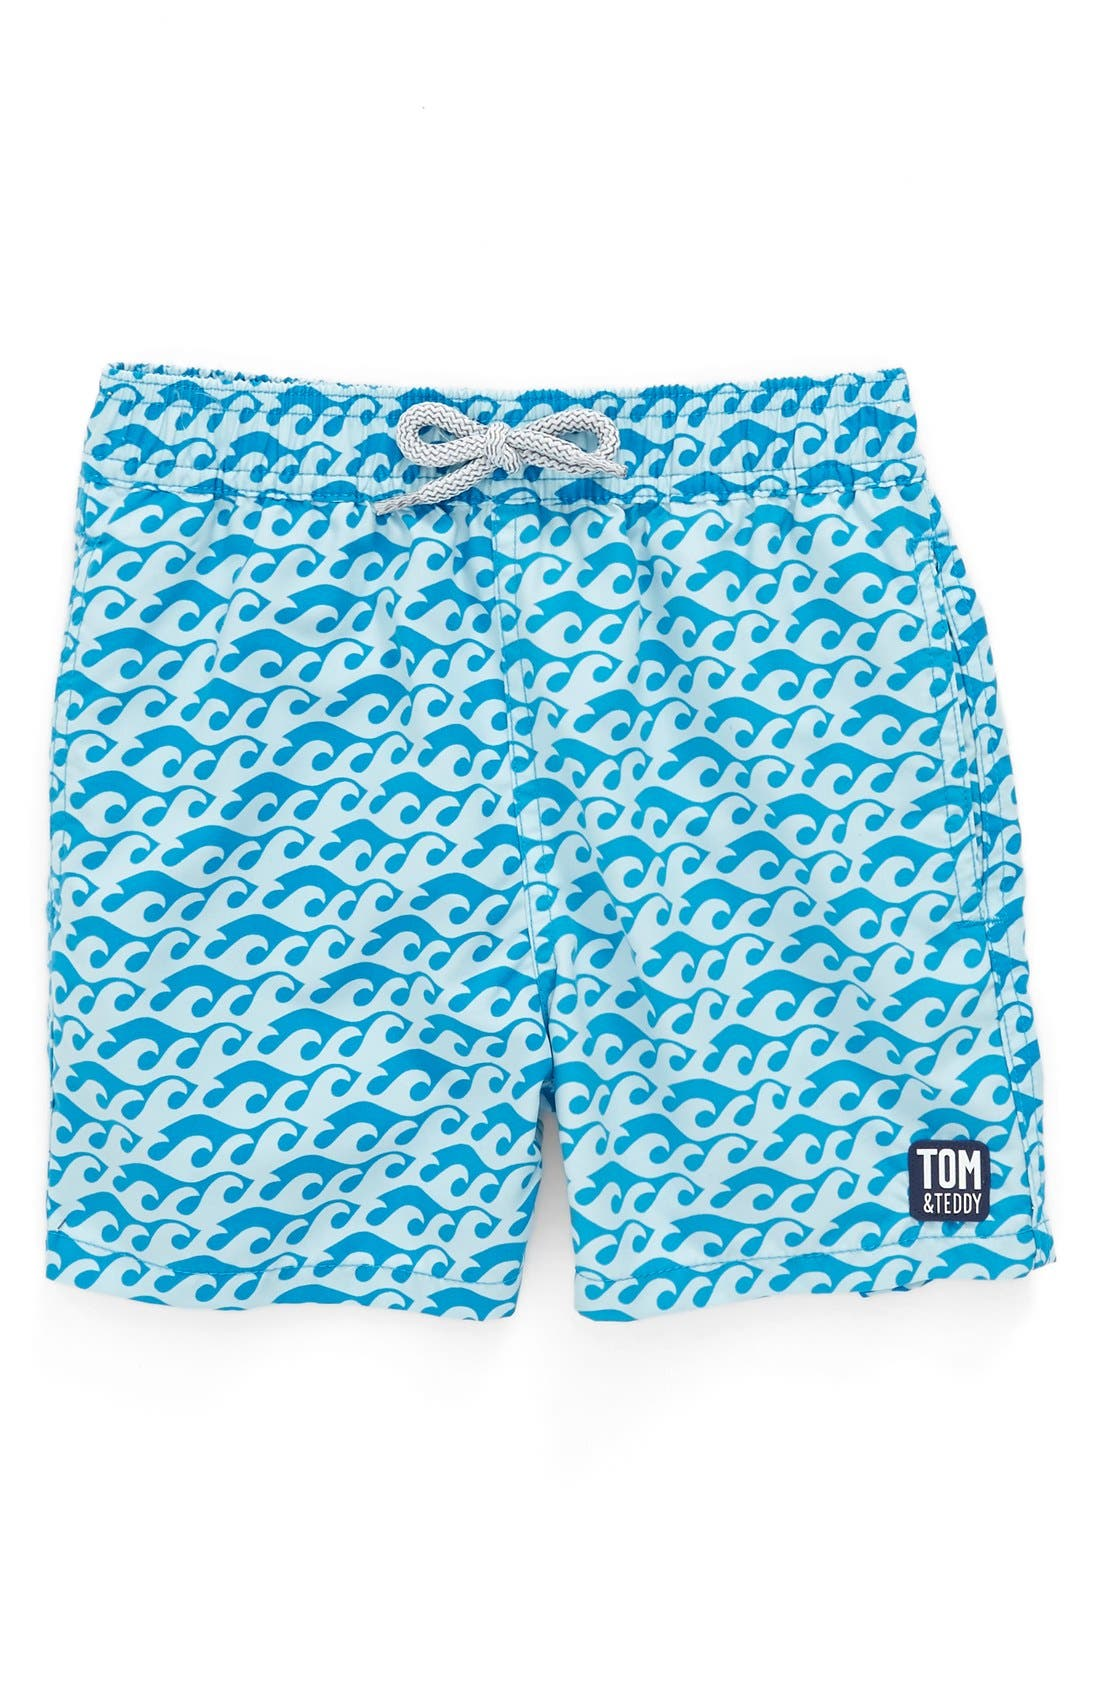 TOM & TEDDY 'Pattern Waves' Swim Trunks